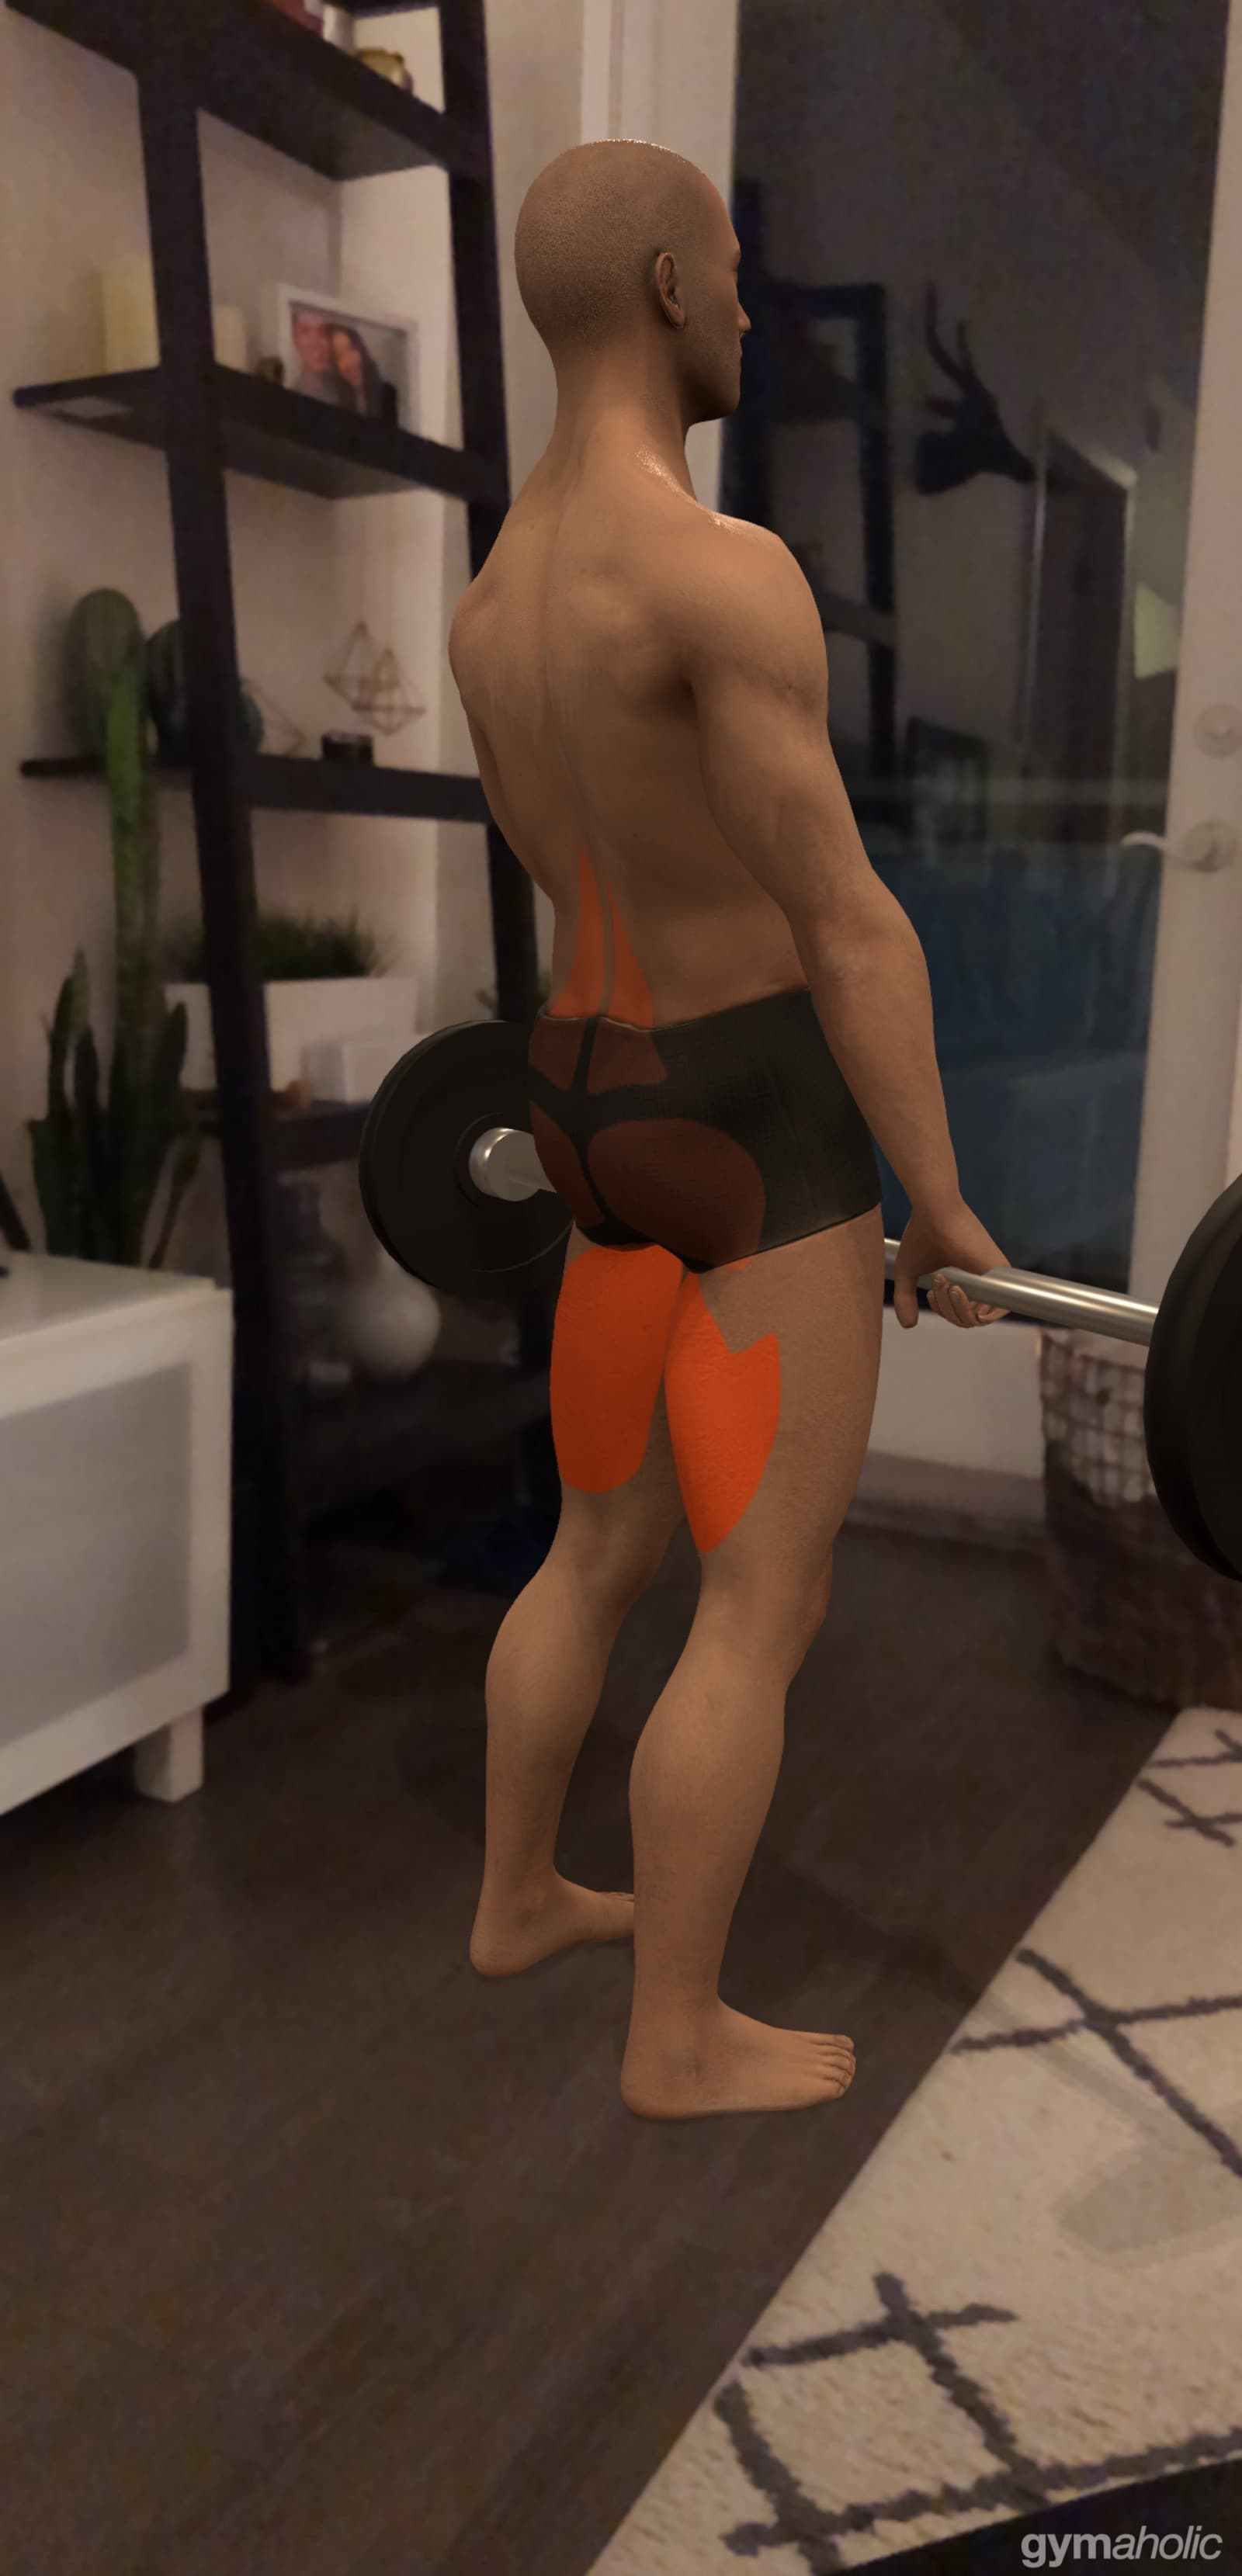 AR helps teach proper form and give cues for what muscles touse.